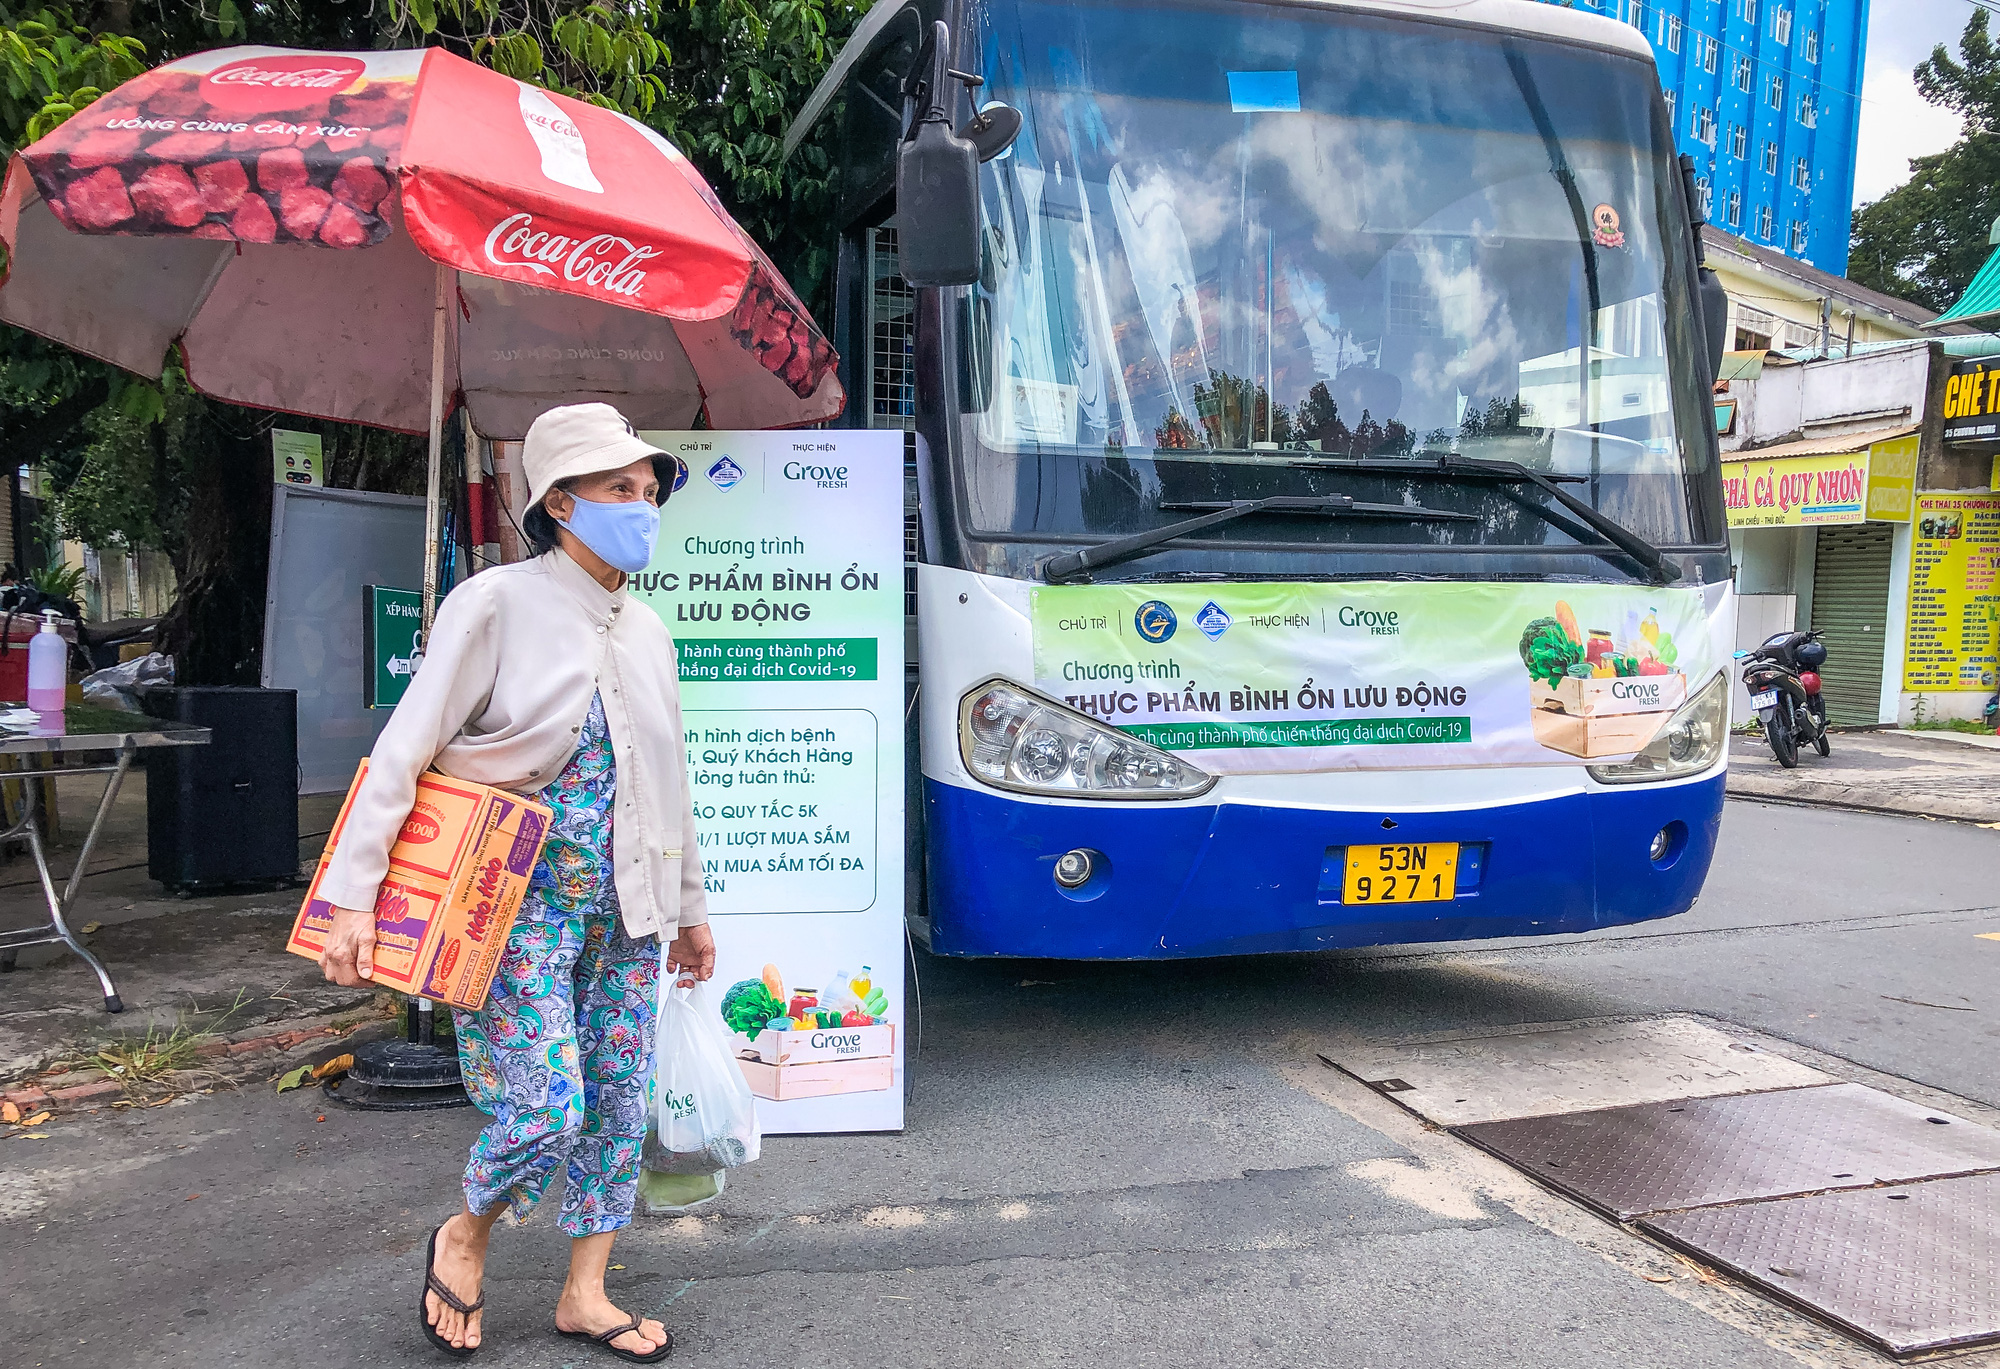 The mobile mini-supermarket parks on Chuong Duong Street in Thu Duc City, Ho Chi Minh City, August 7, 2021. Photo: Kim Ut / Tuoi Tre